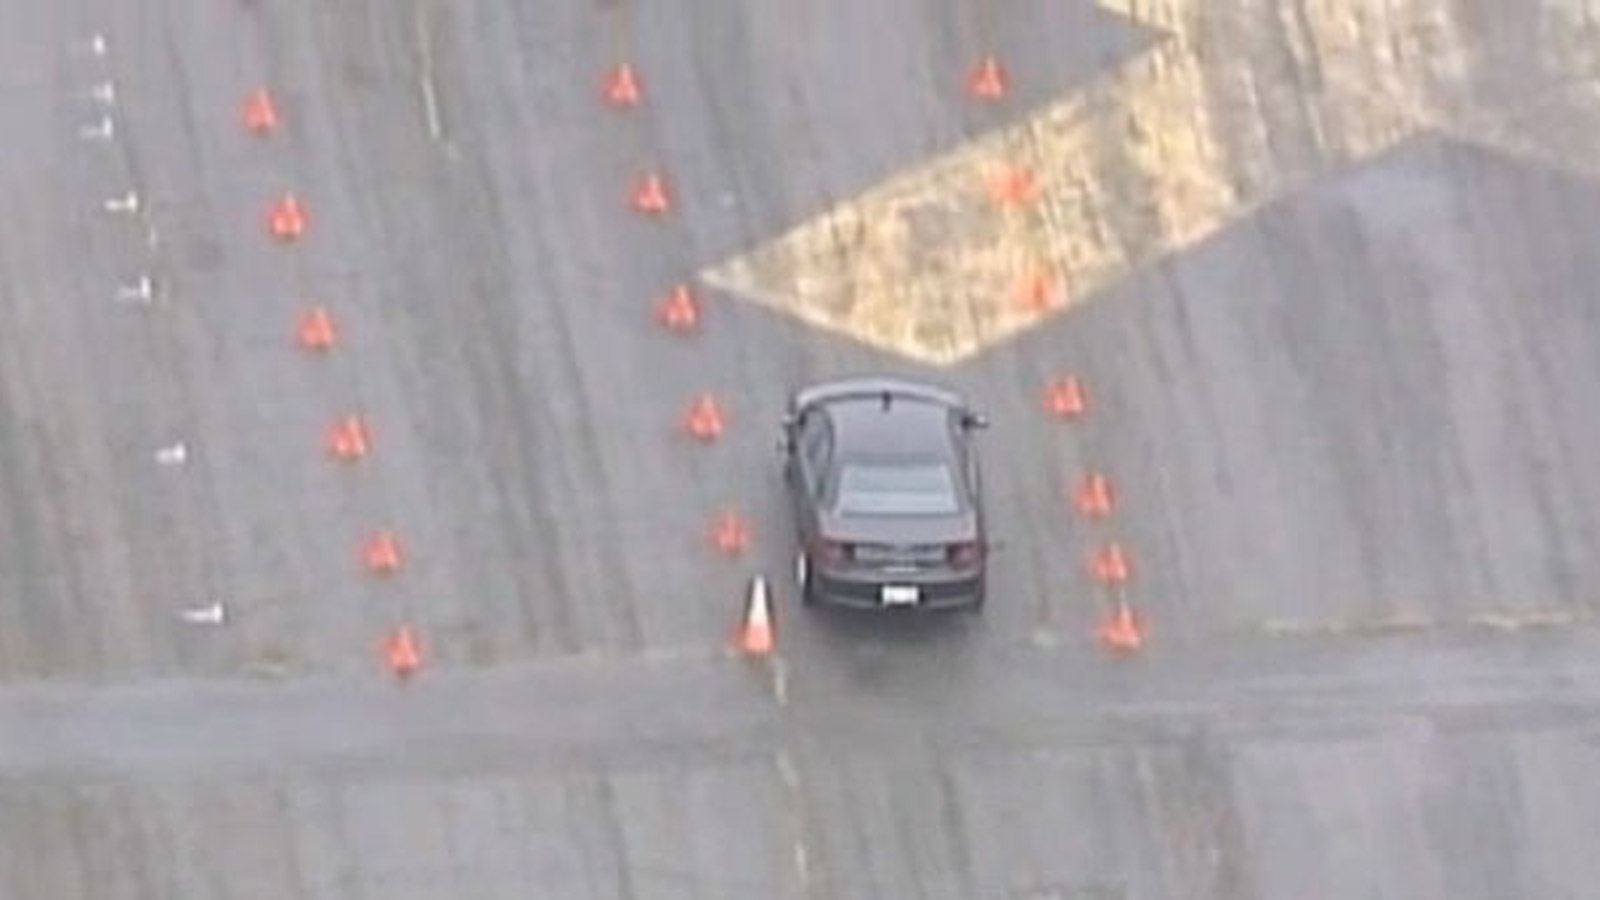 An image from a CBS4 report in November 2015 in which a driving test given to drivers who were stoned to test their ability. (credit: CBS)